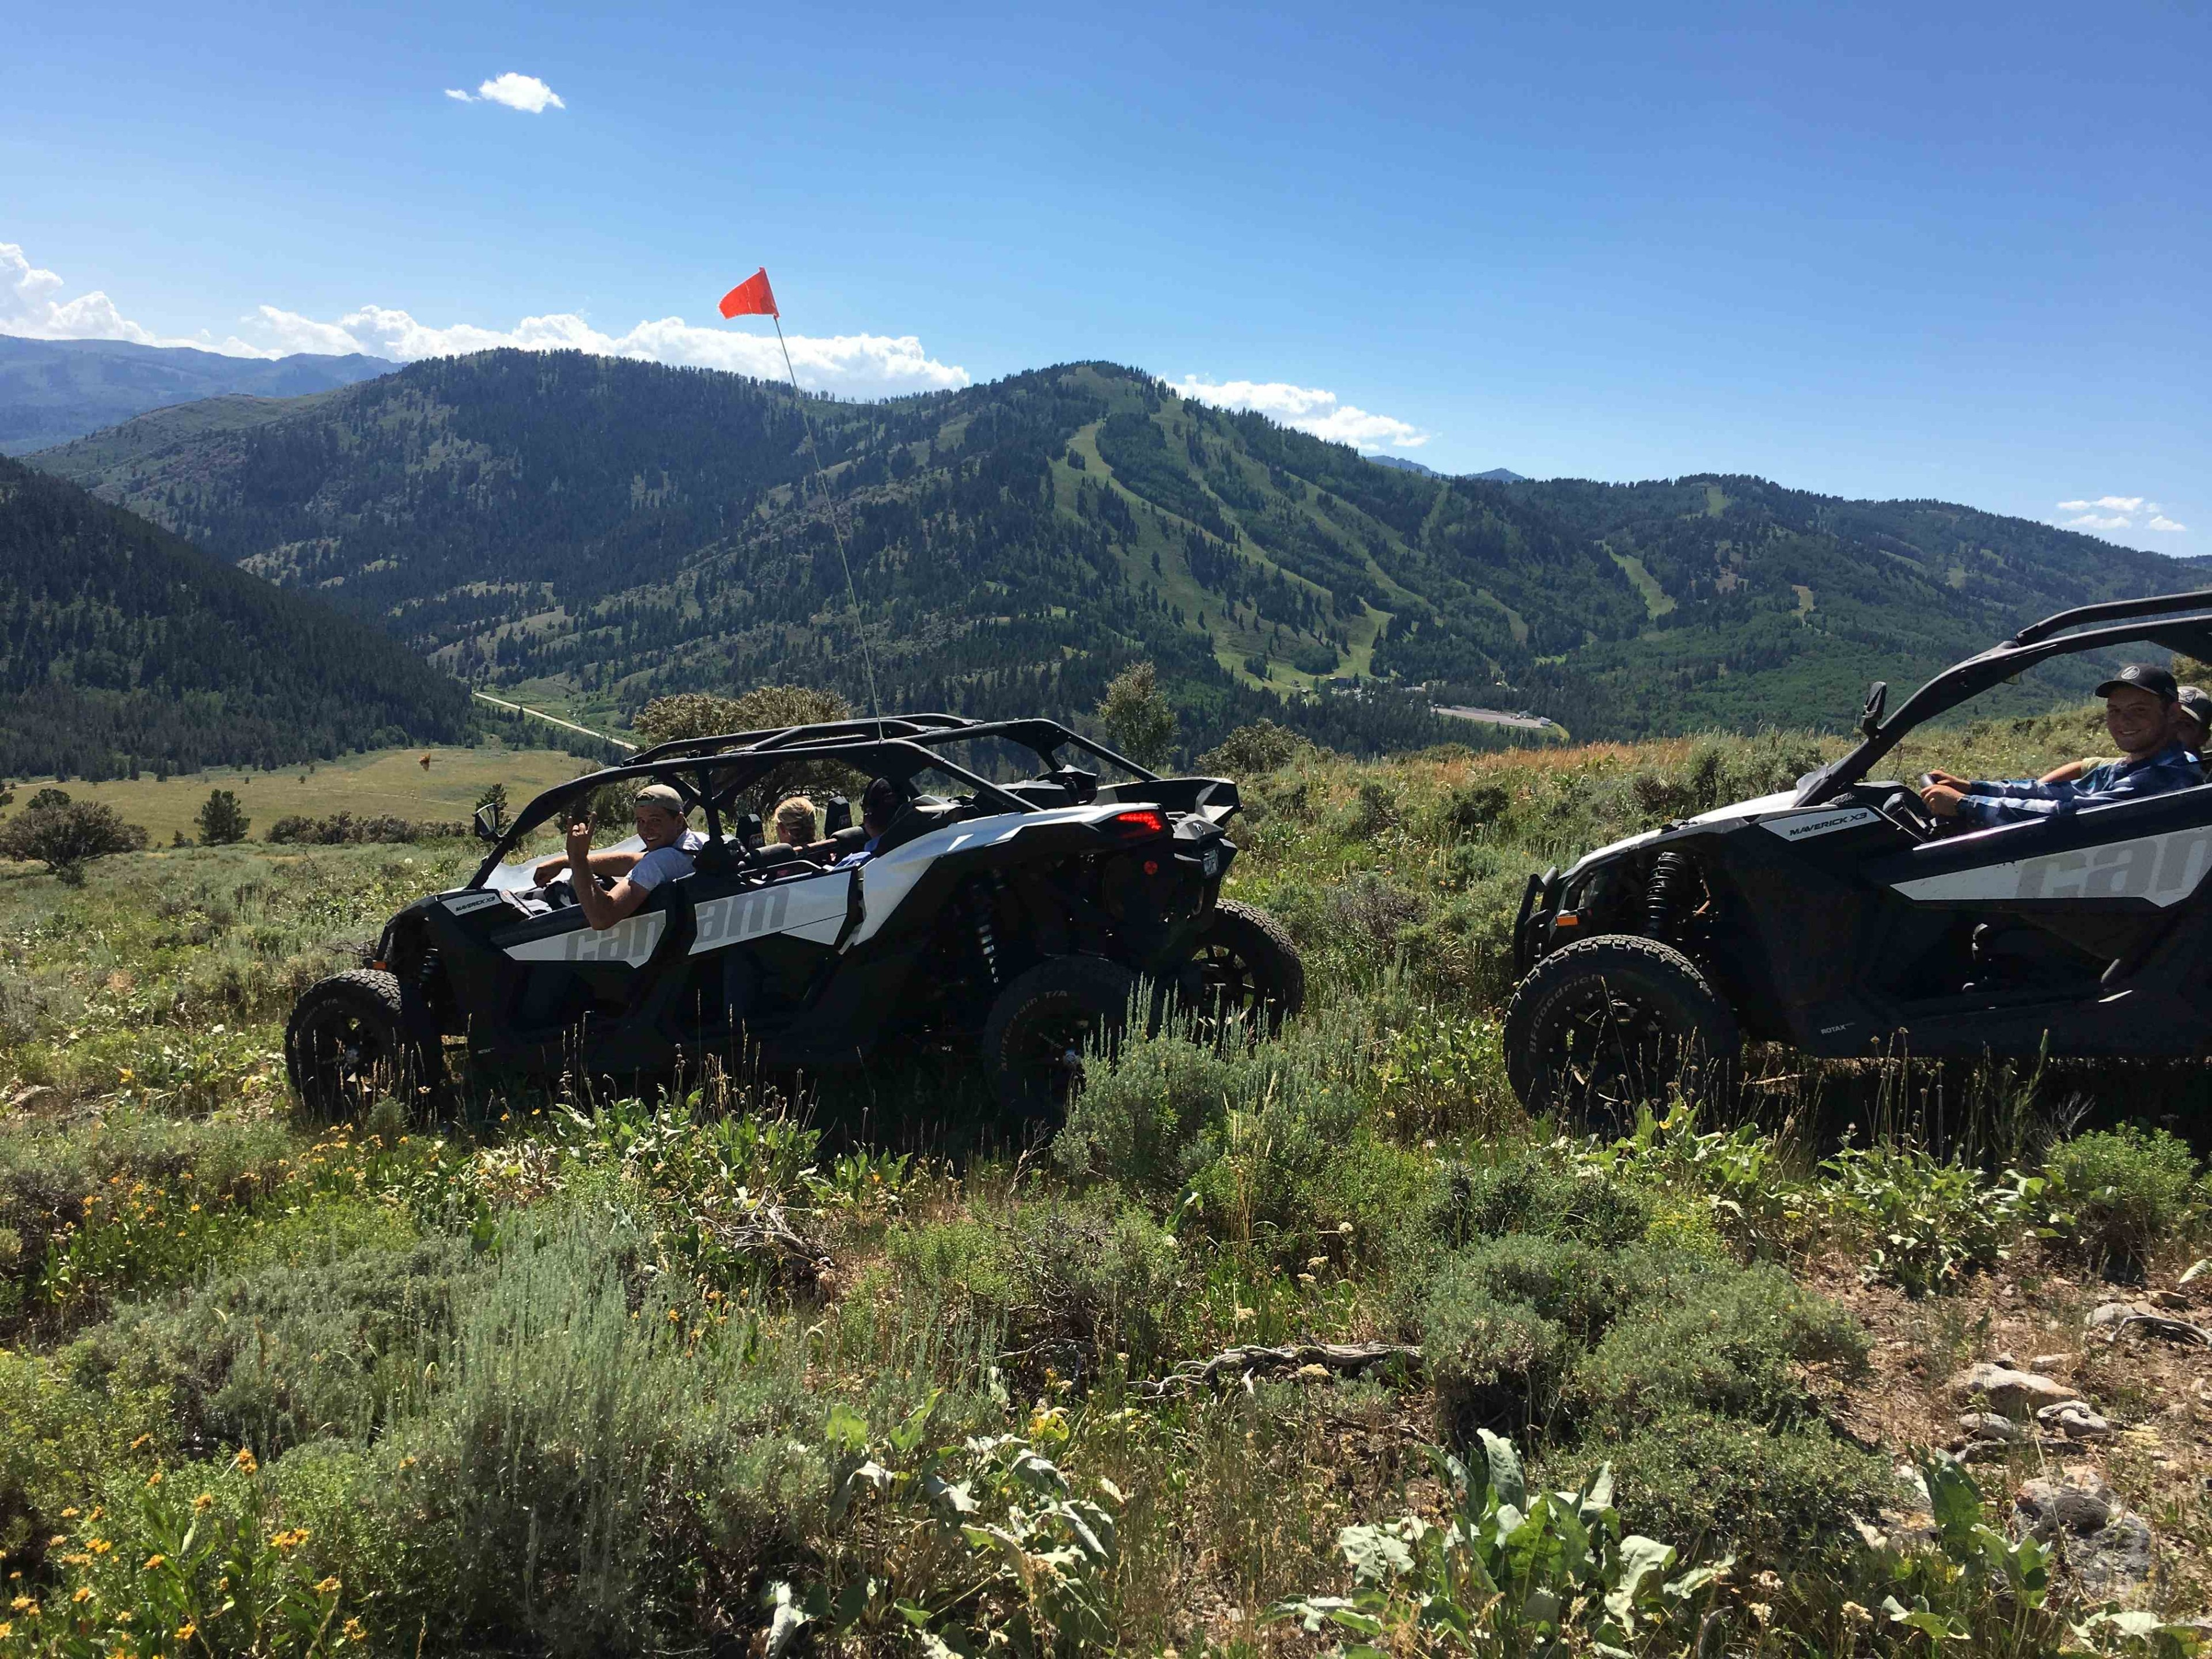 2 Maverick X3 with mountains in background